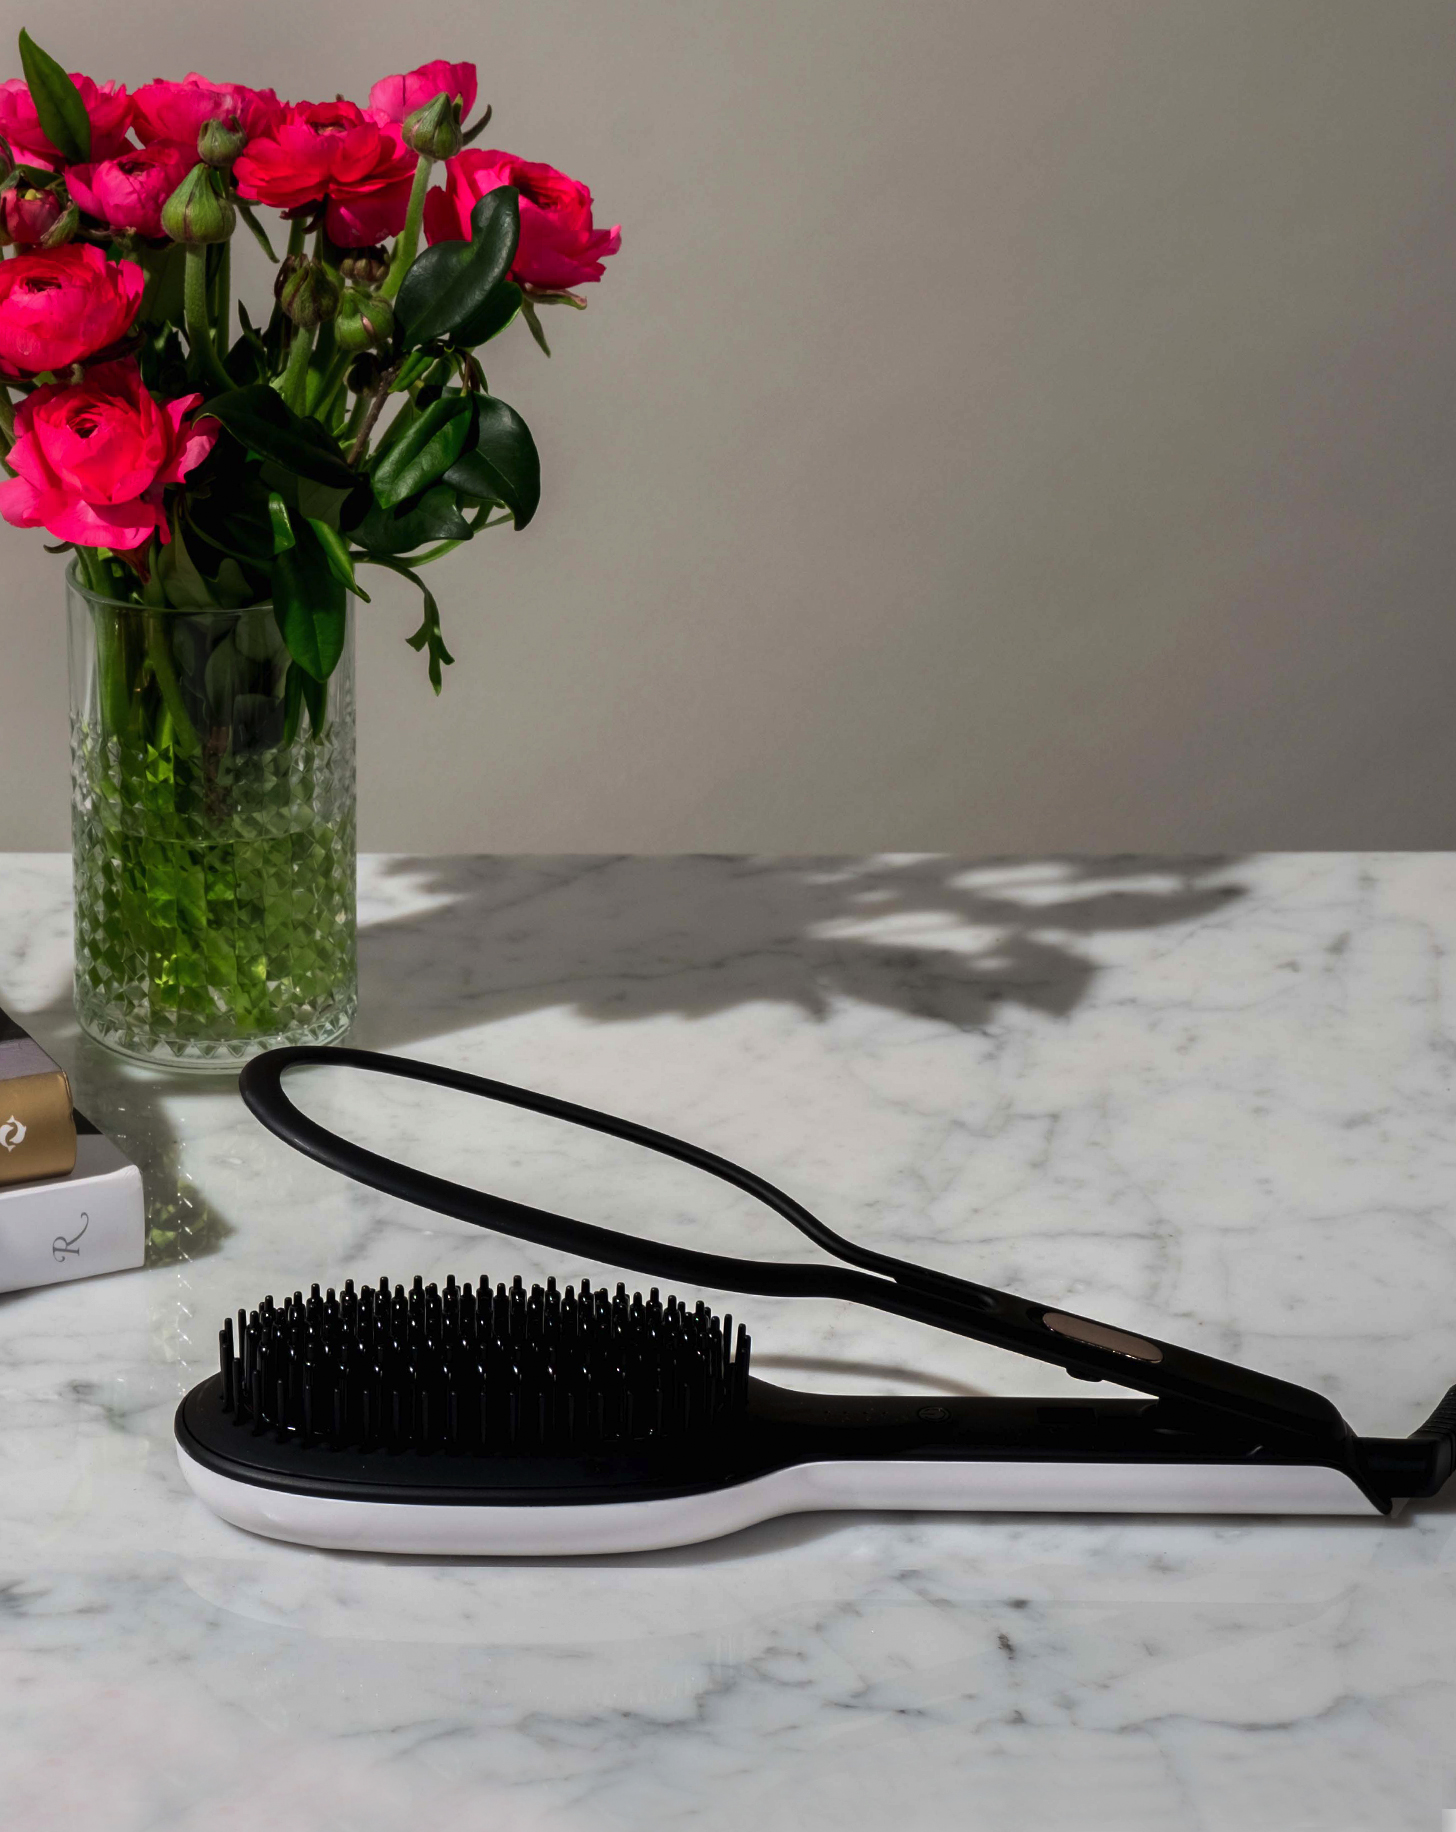 GLOSSIE Ceramic Styling Brush on marble counter